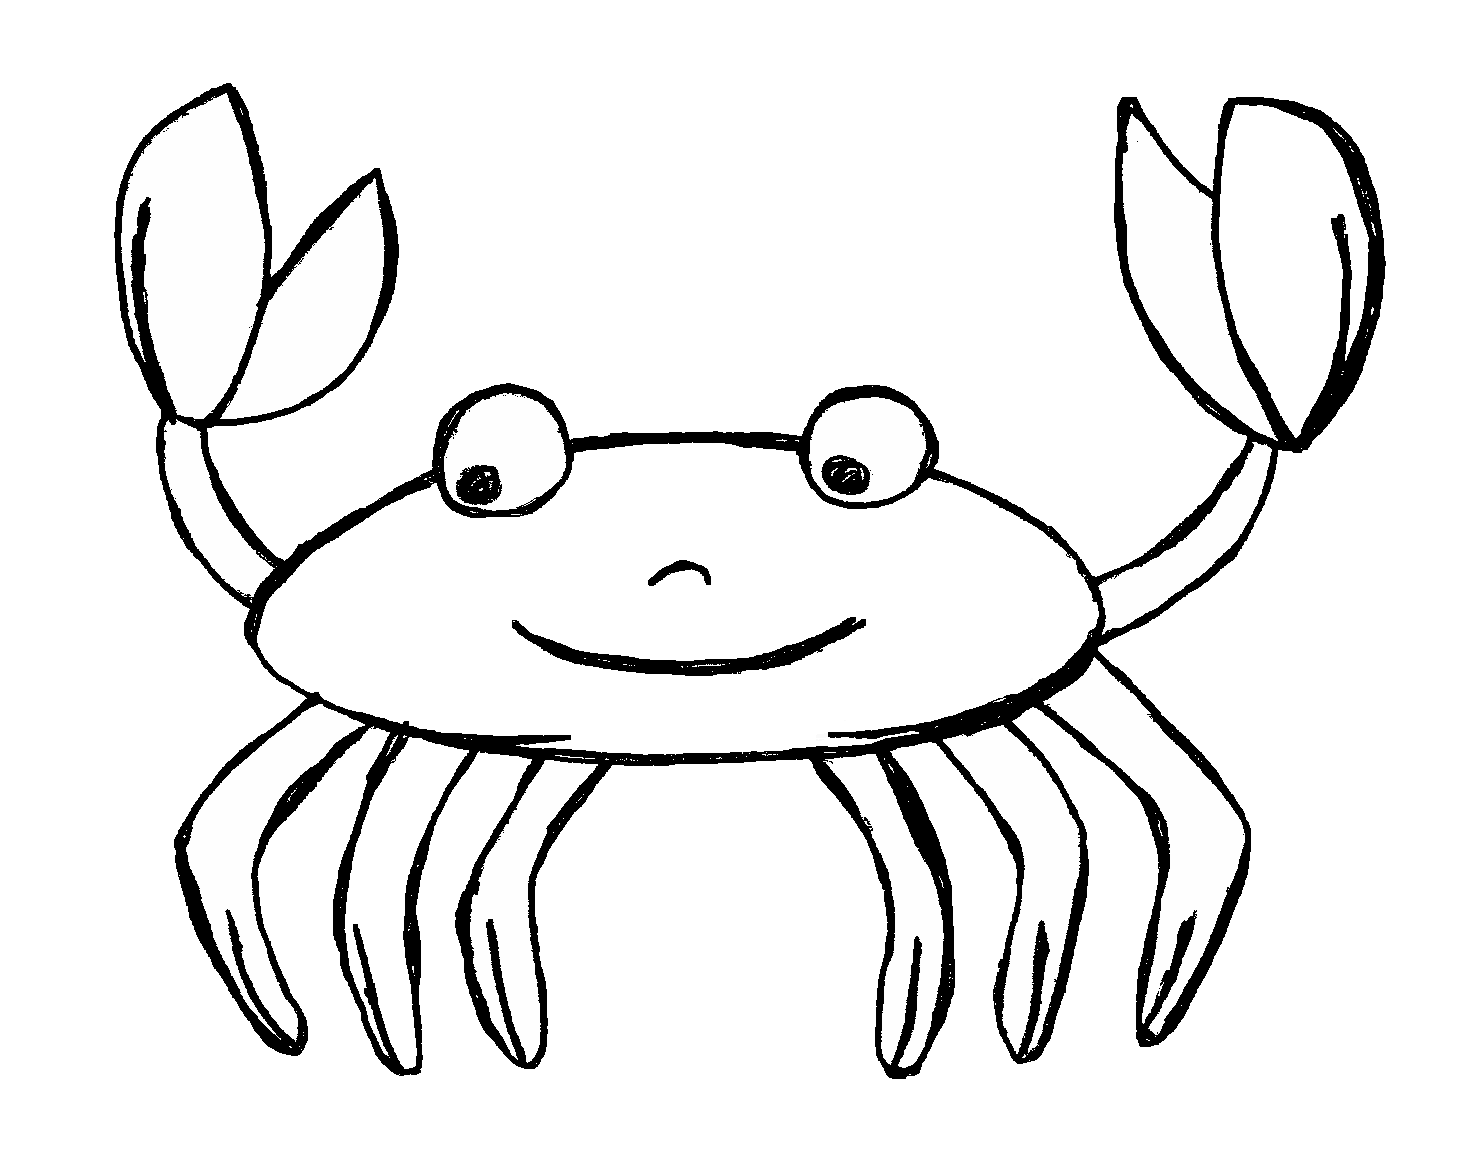 Crab in water clipart.